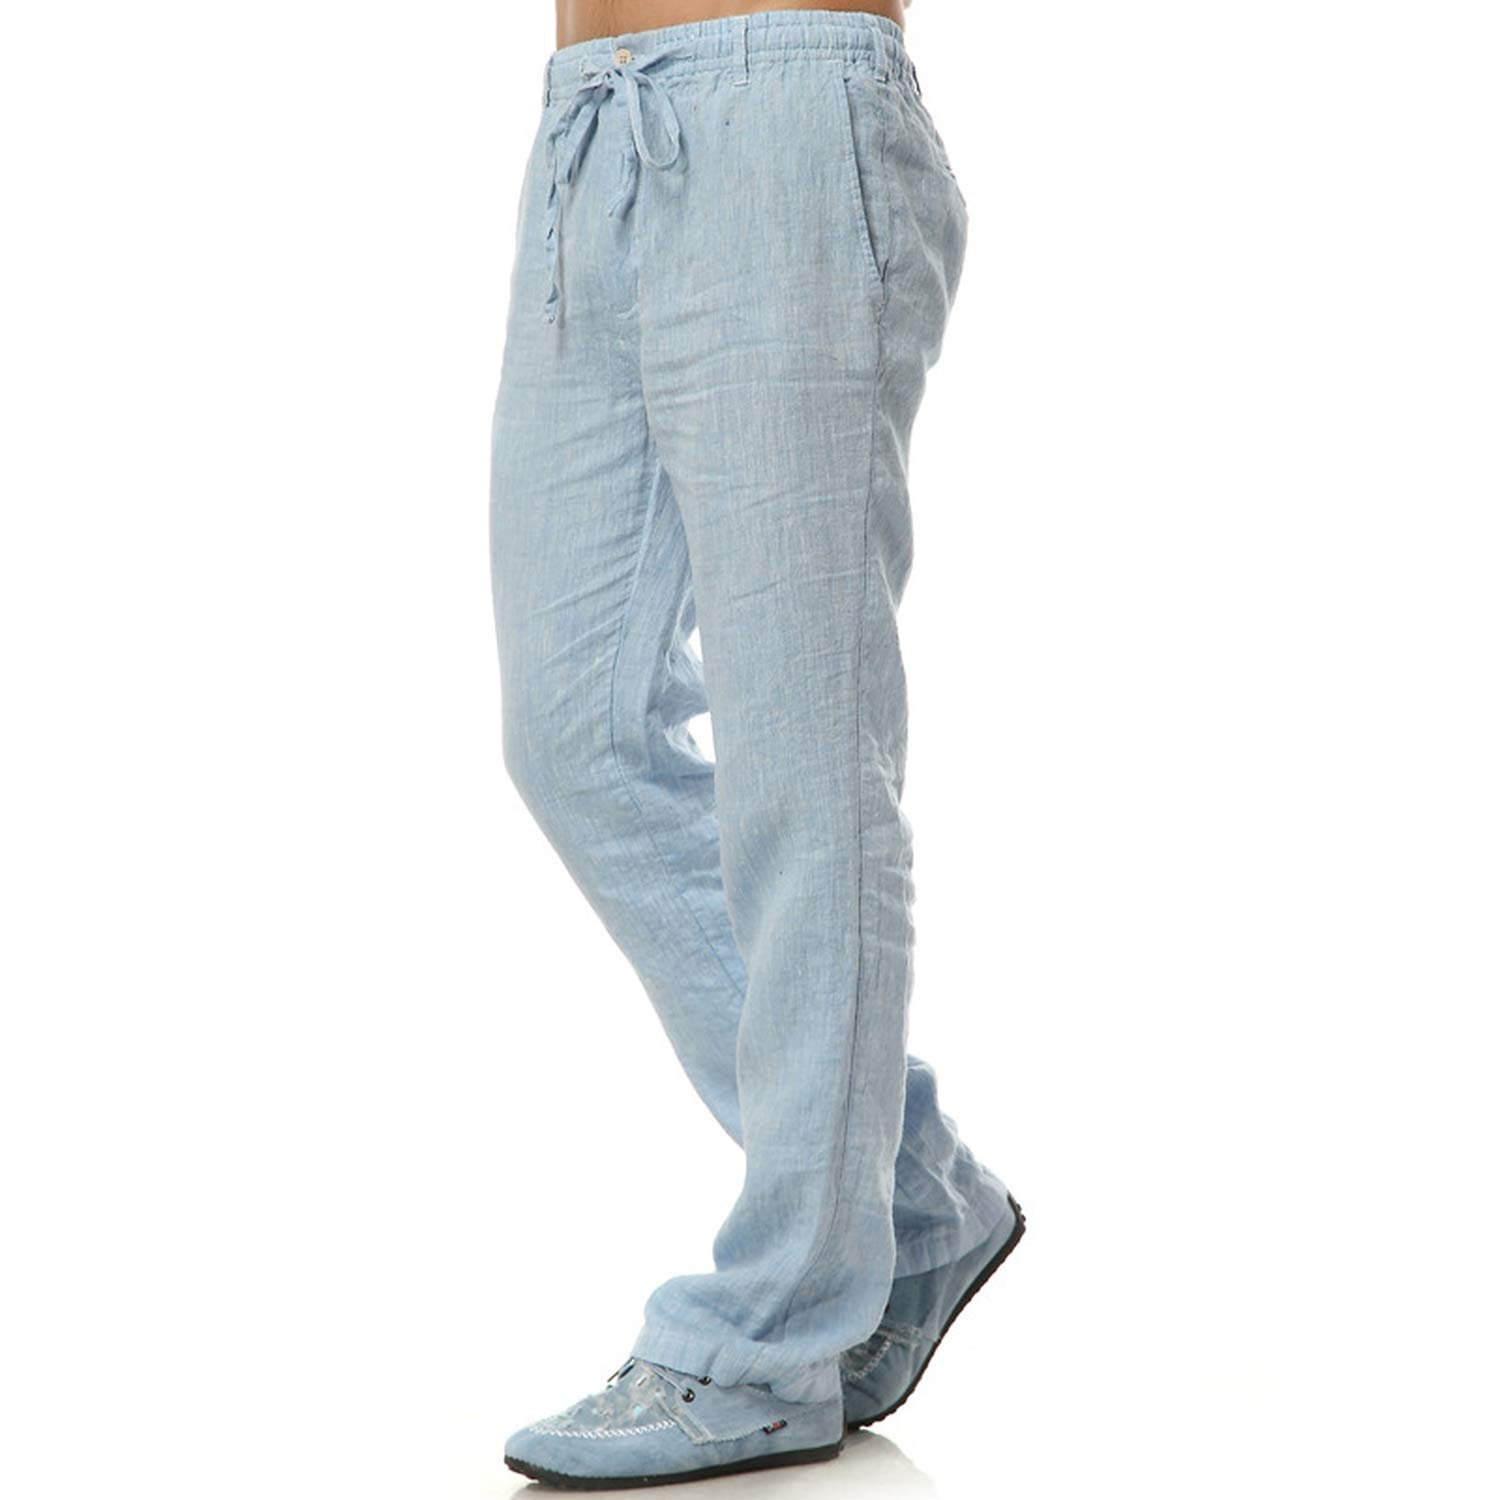 Nutsima Summer Breathable Linen Trousers White Casual Loose Straight Linen Trousers Thin Fluid Pants Male Plus Size